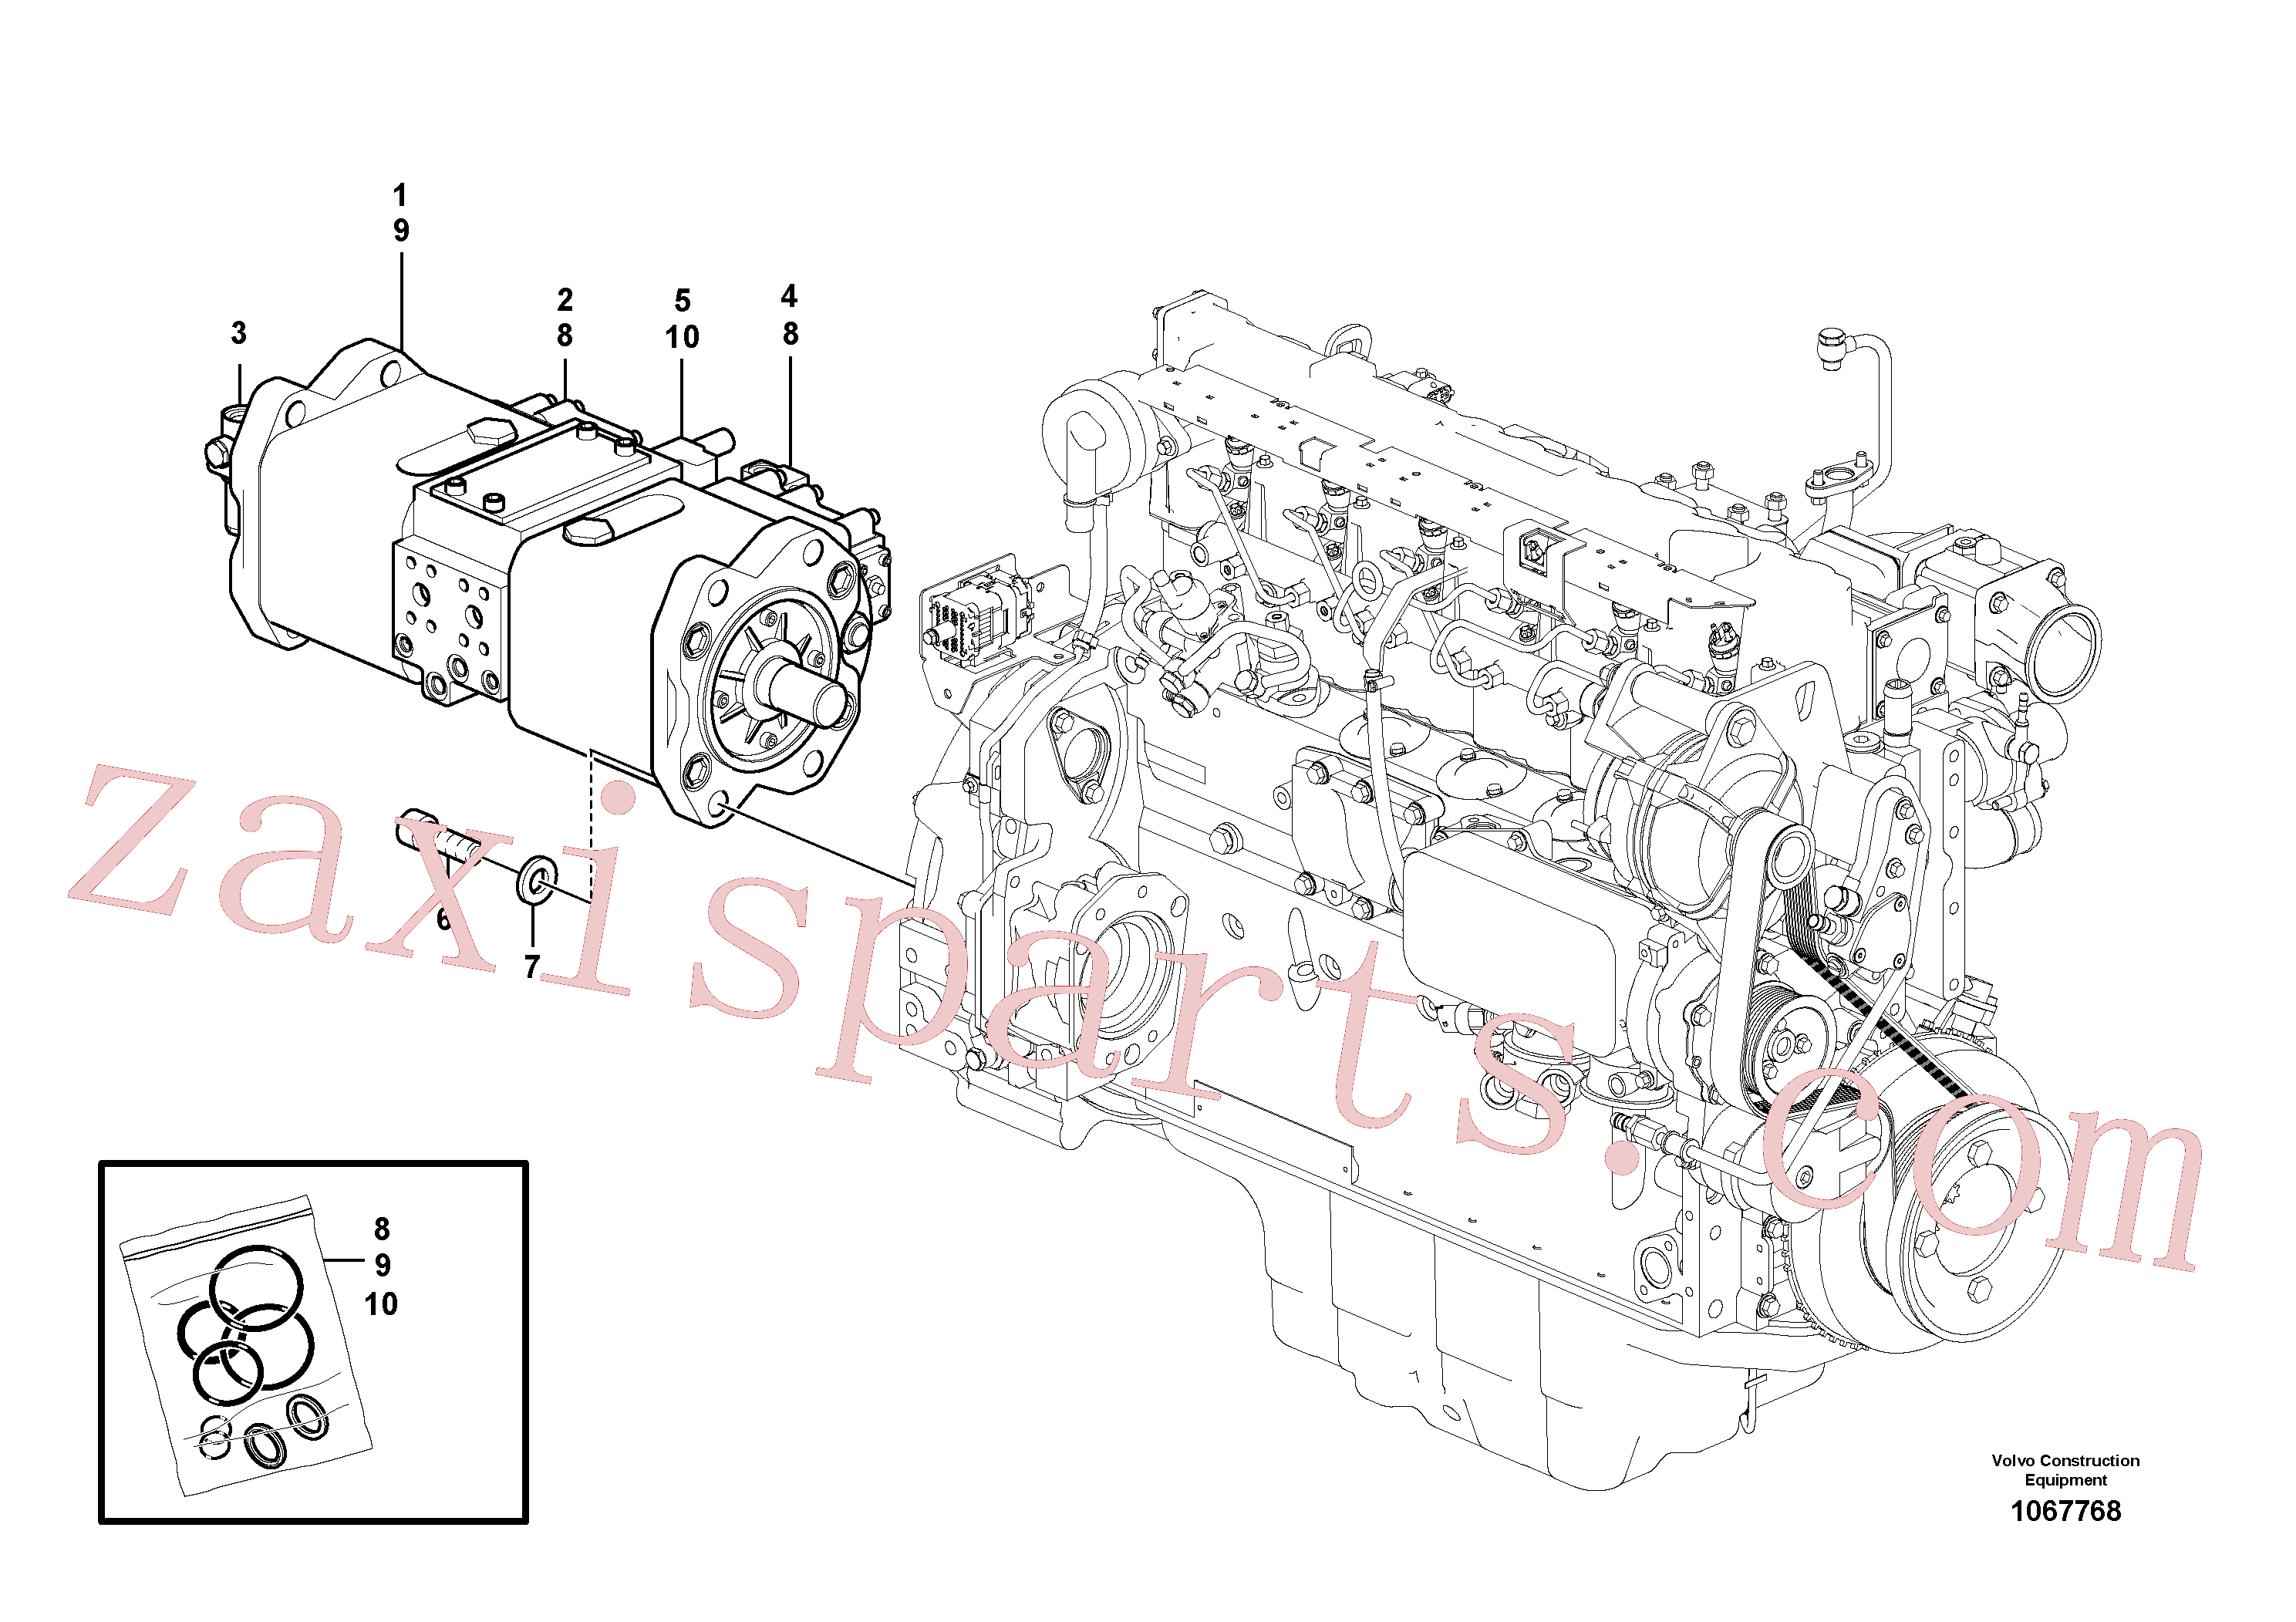 VOE14632316 for Volvo Pump installation(1067768 assembly)